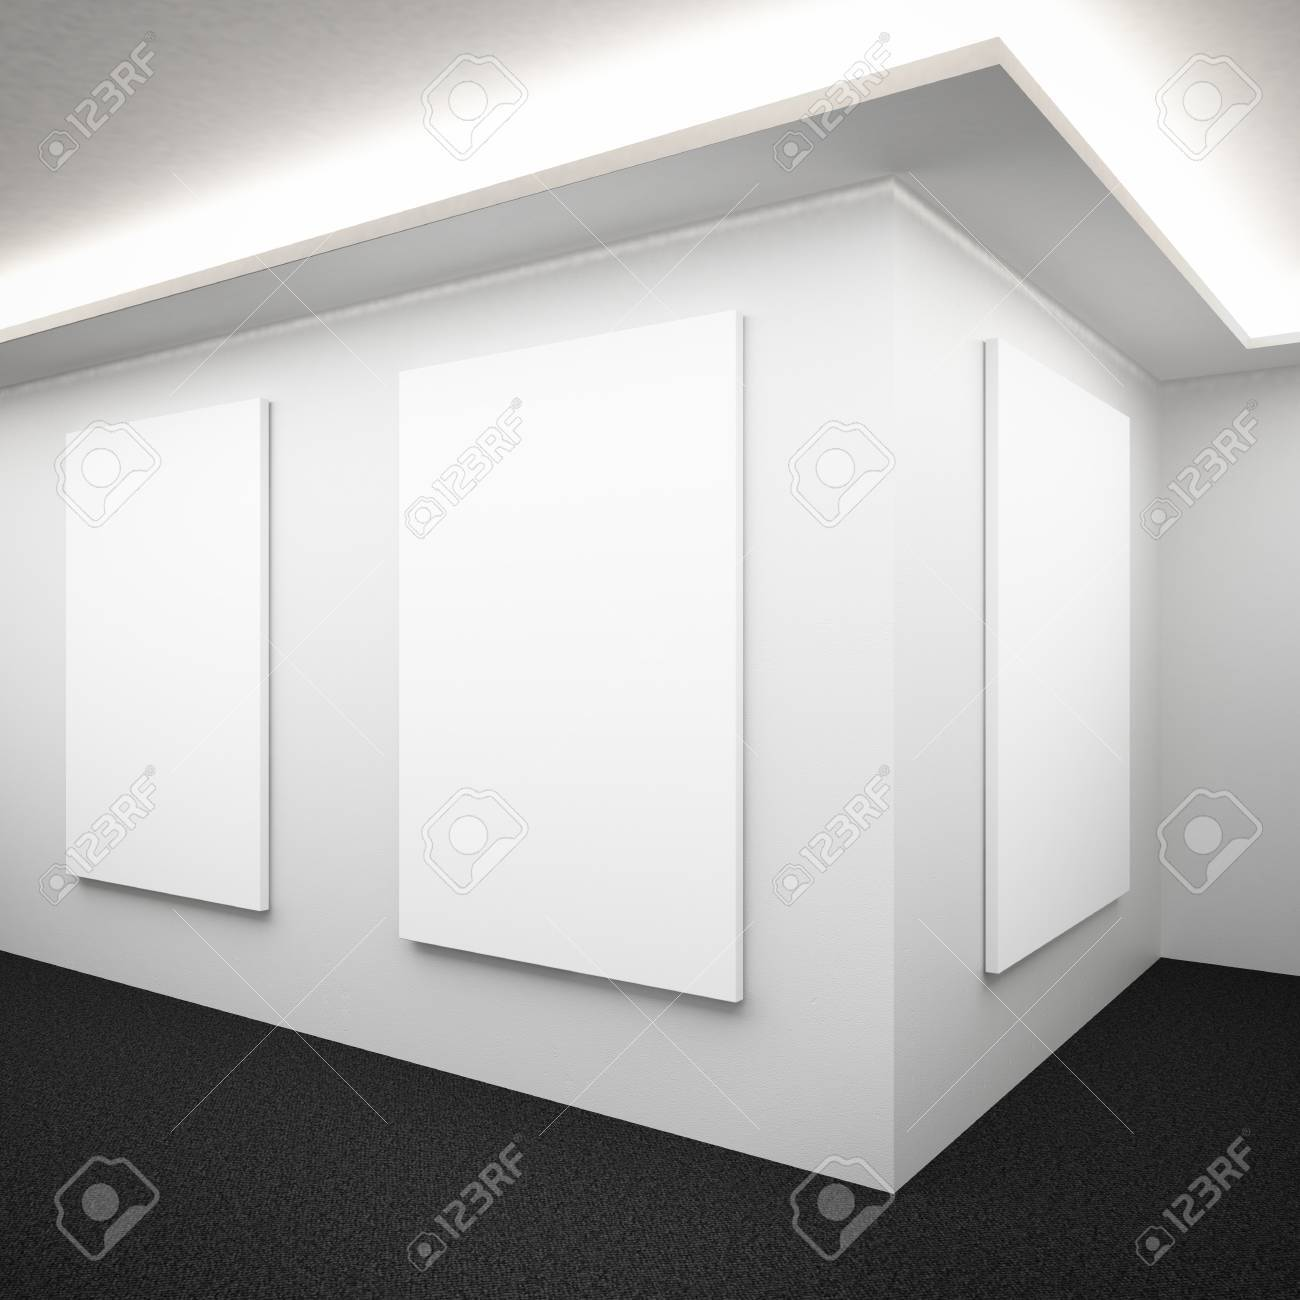 White Gallery Interior With Frames Stock Photo, Picture And Royalty ...